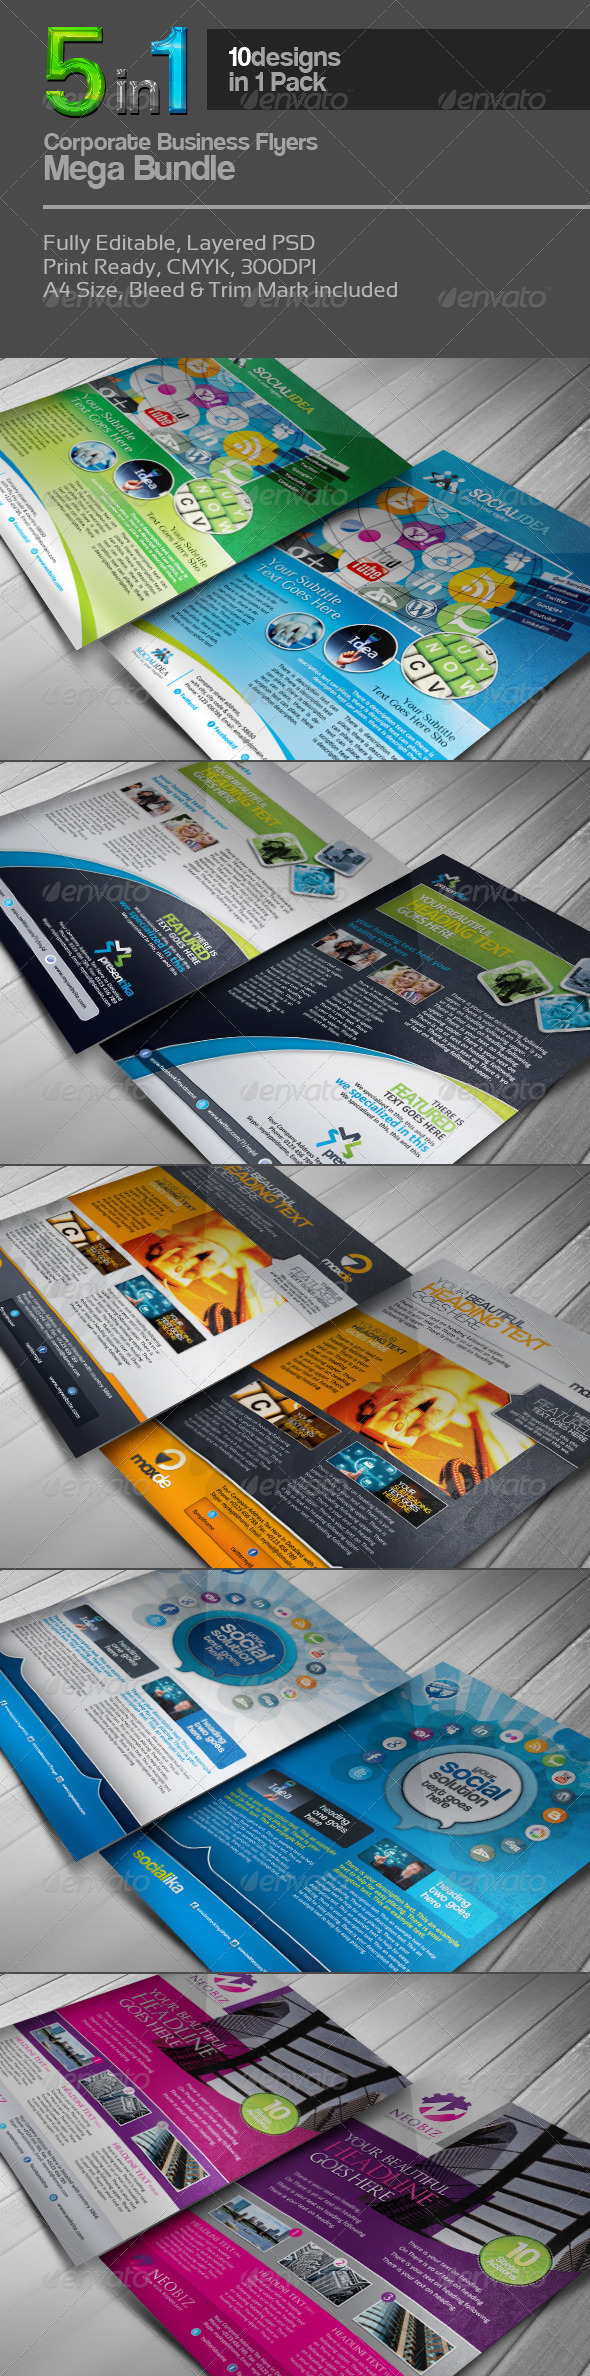 GraphicRiver 5 in 1 Corporate Flyers Mega Bundle 3606869